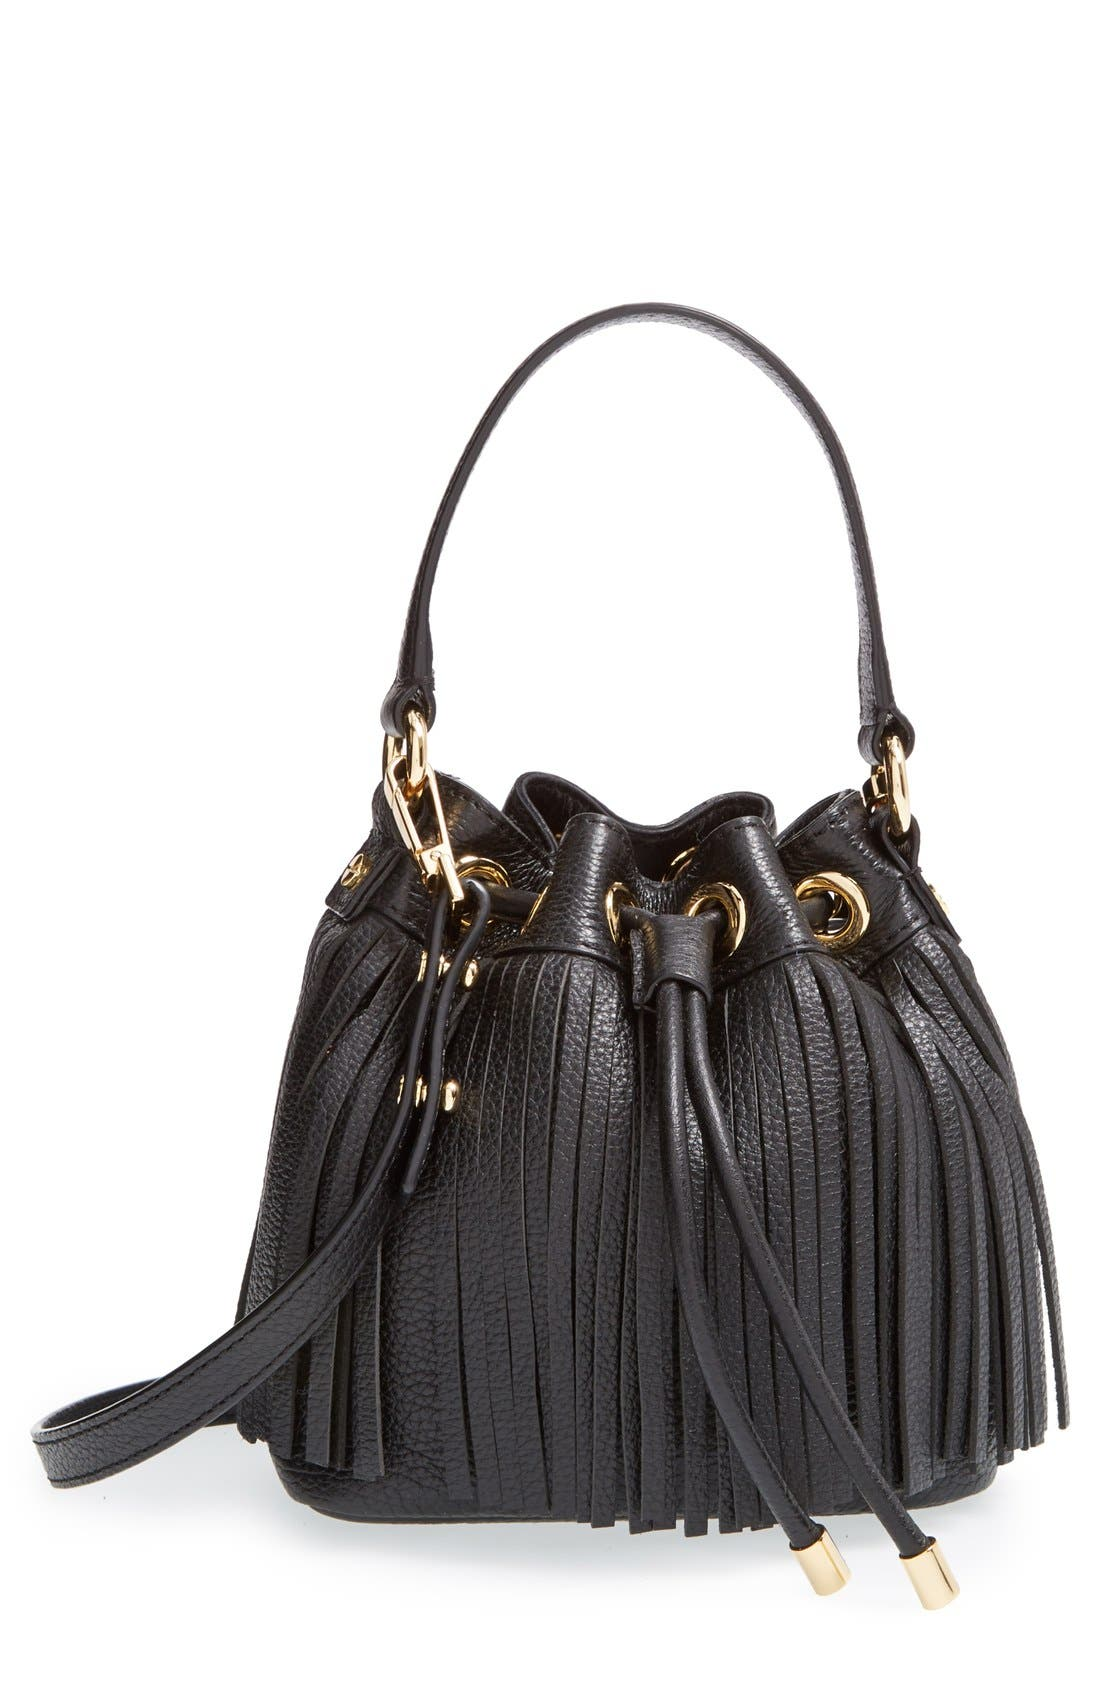 MILLY, 'Small Essex' Fringed Leather Bucket Bag, Main thumbnail 1, color, 001